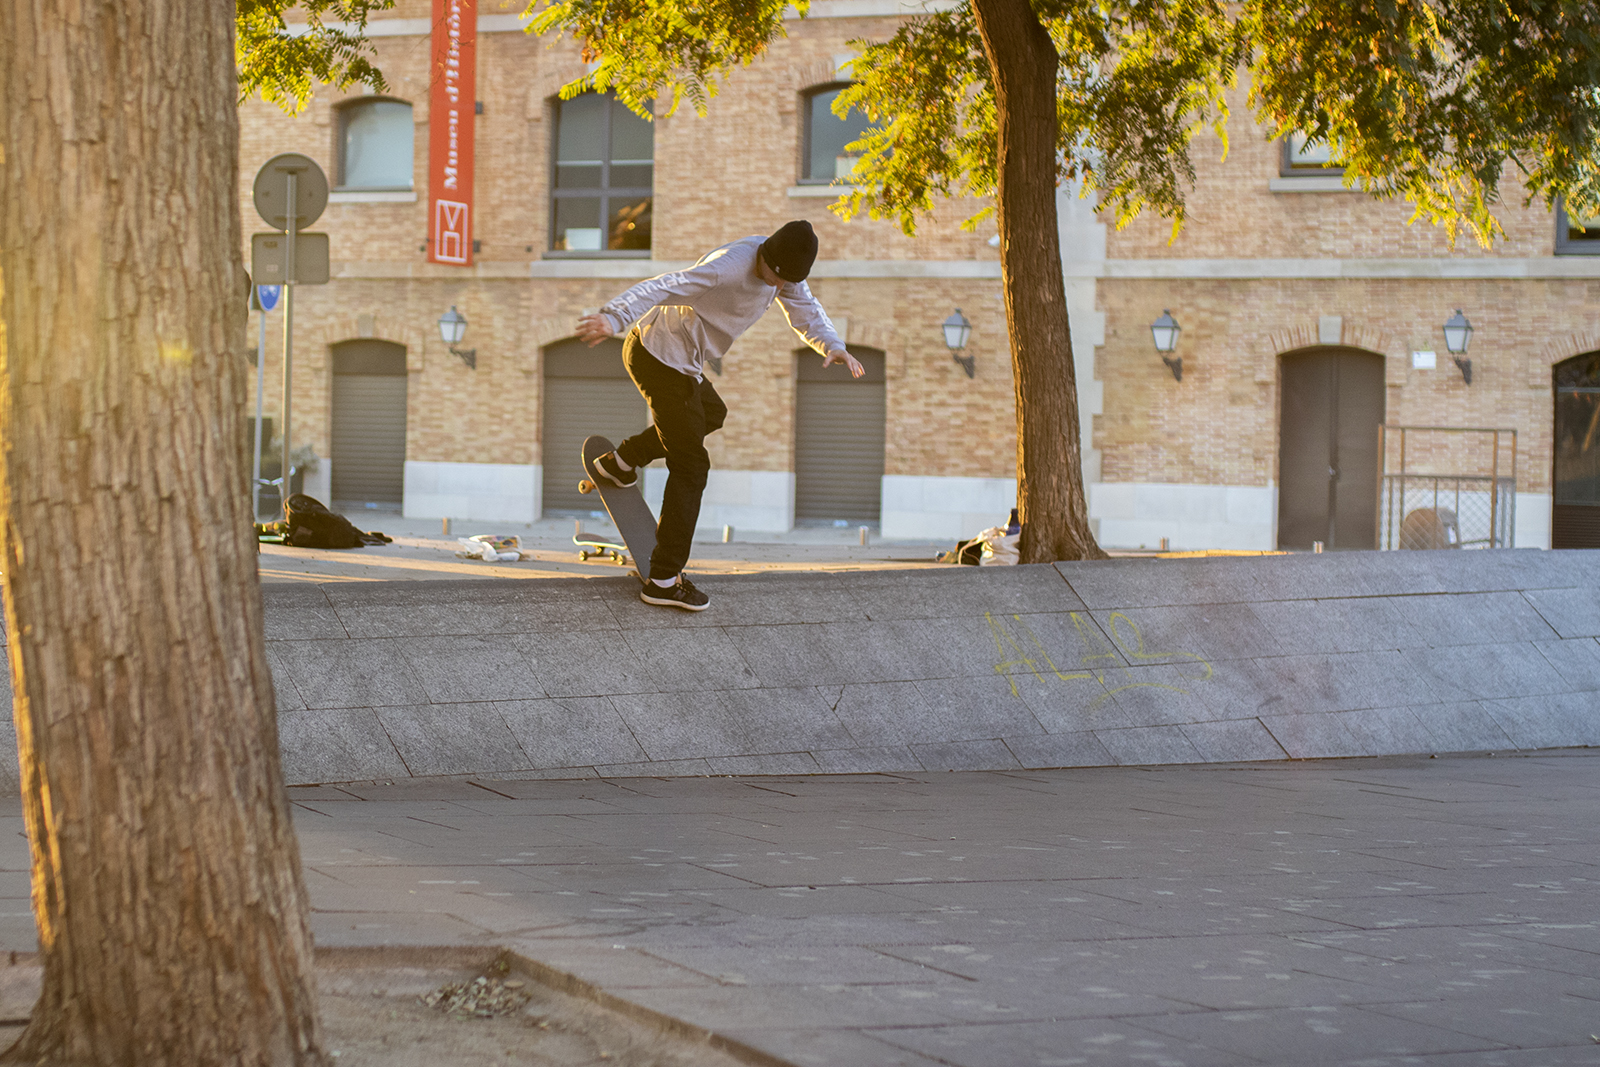 Backside Noseblunt - Barcelona